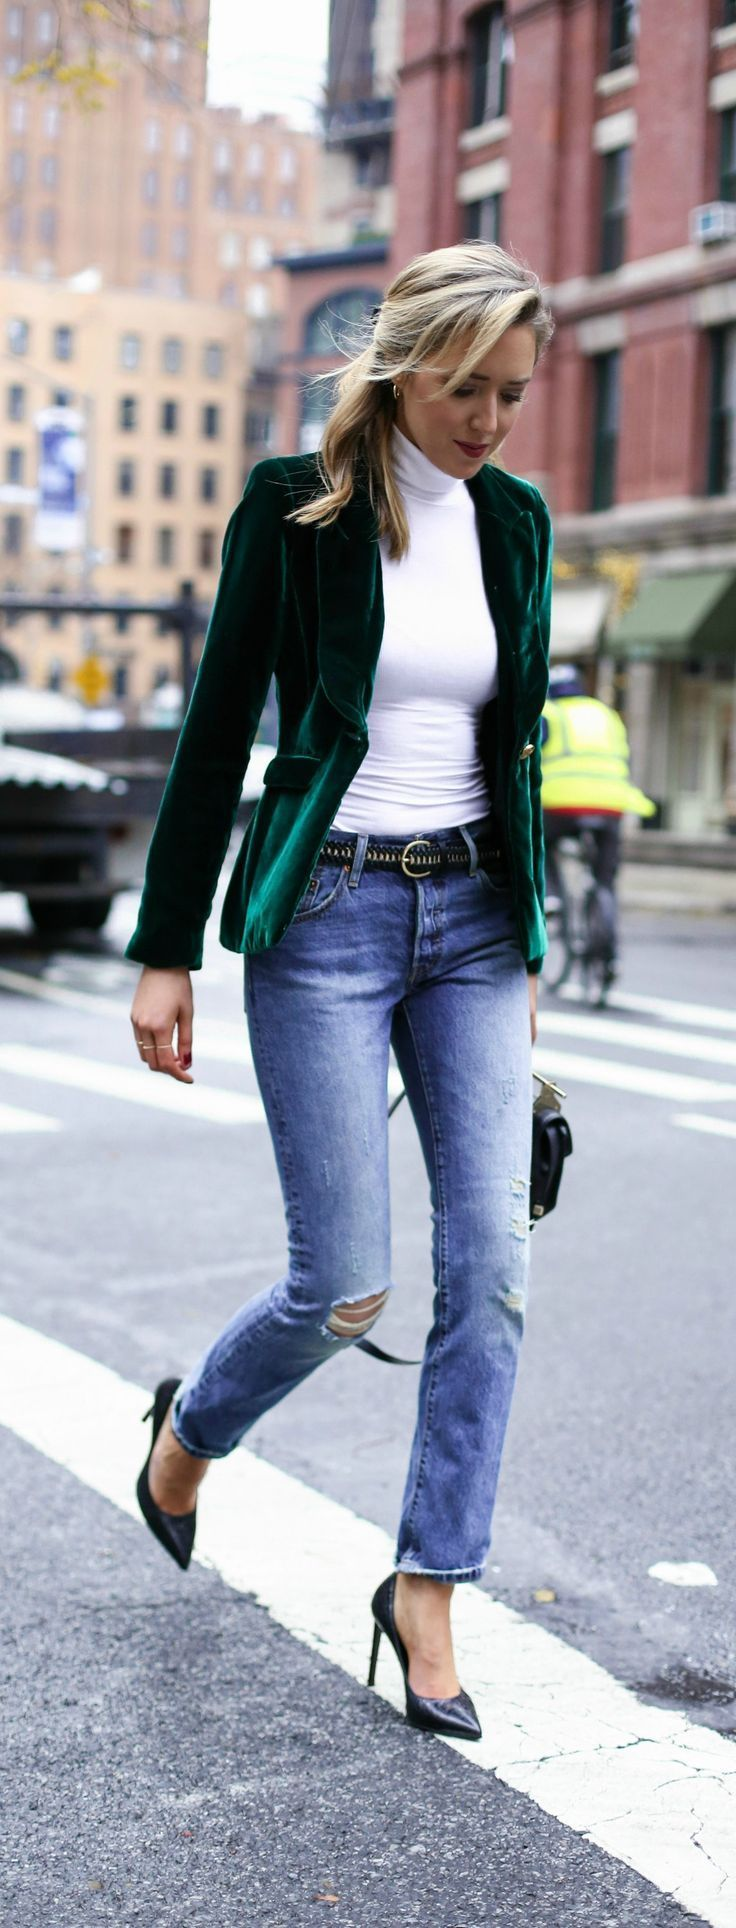 green velvet blazer, classic white turtleneck, distressed boyfriend jeans, timeless pointy toe heels, black and gold braid belt, rhinestone satin ribbon hair bow barrette